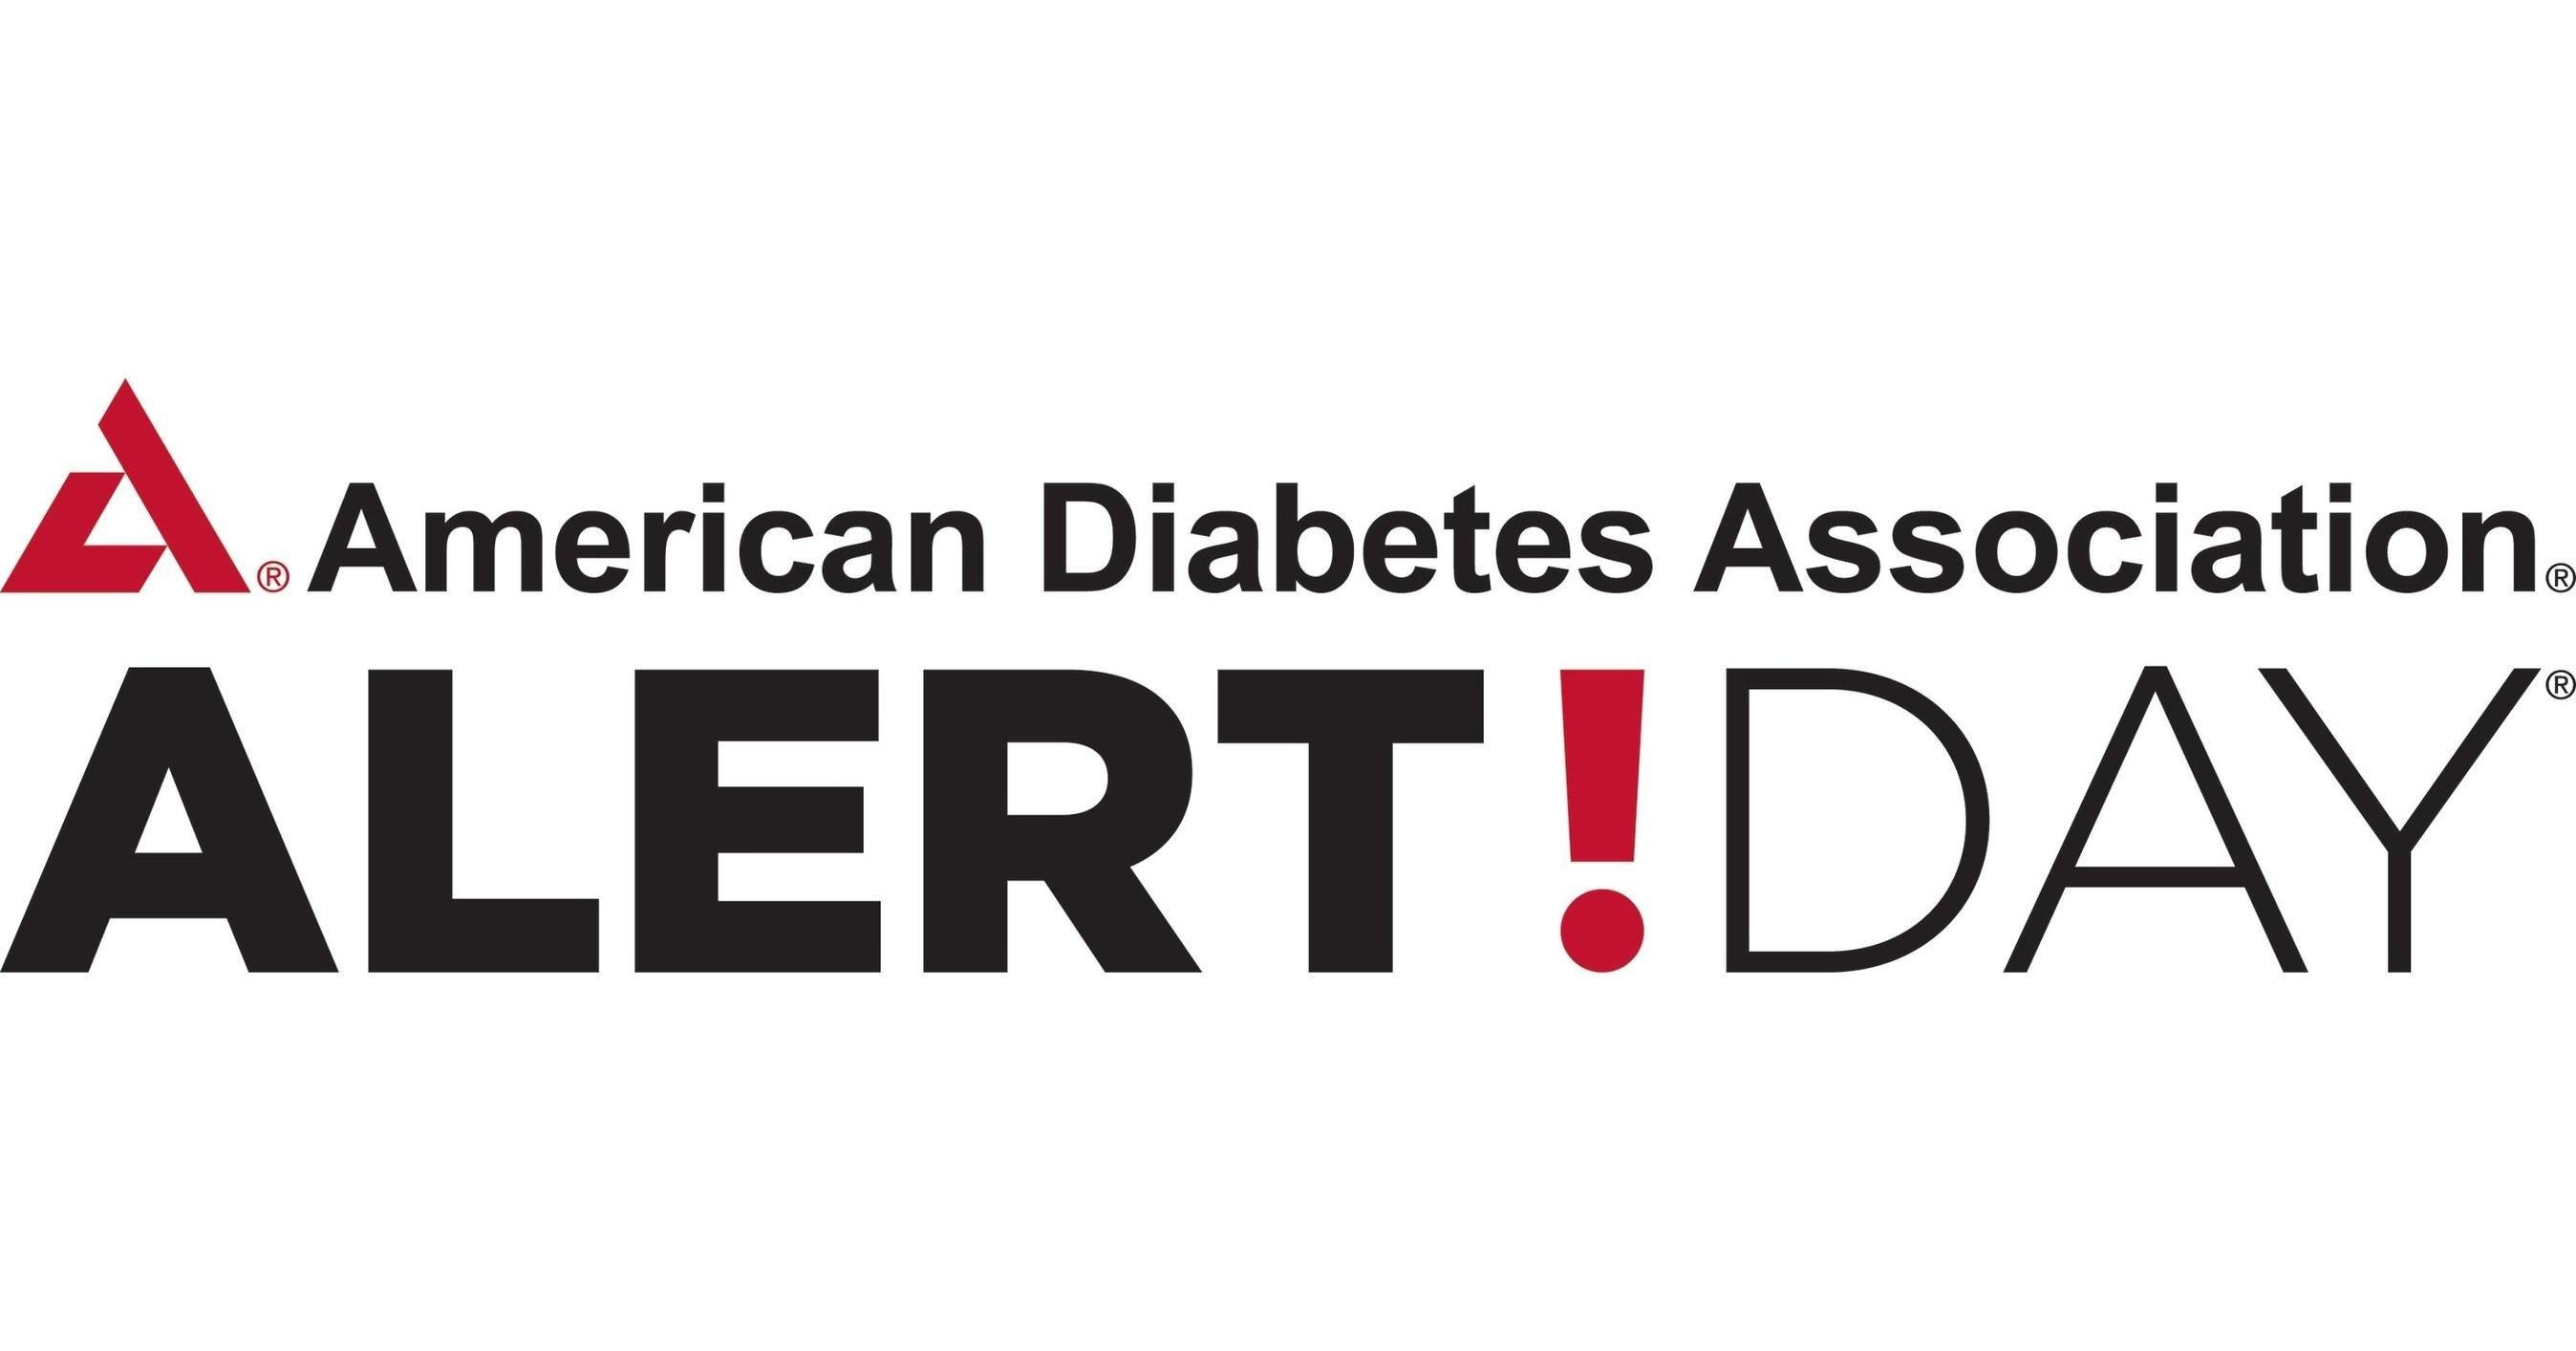 Wellcare Sponsors The American Diabetes Association's 2017 Step Out: Walk To Stop Diabetes In Tampa Bay